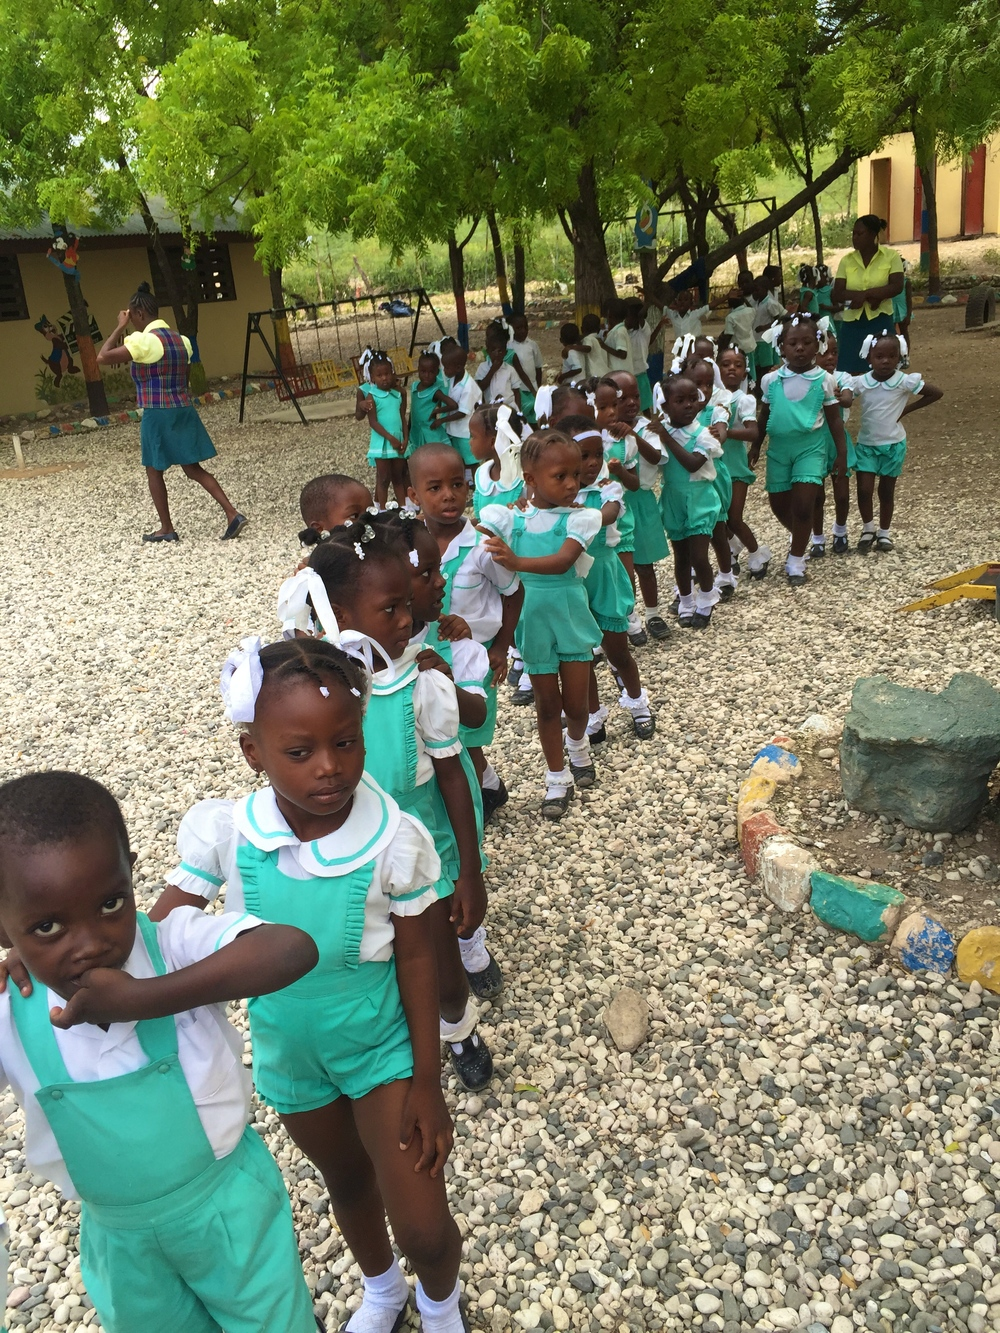 All the children lining up to return back to their classrooms to learn!